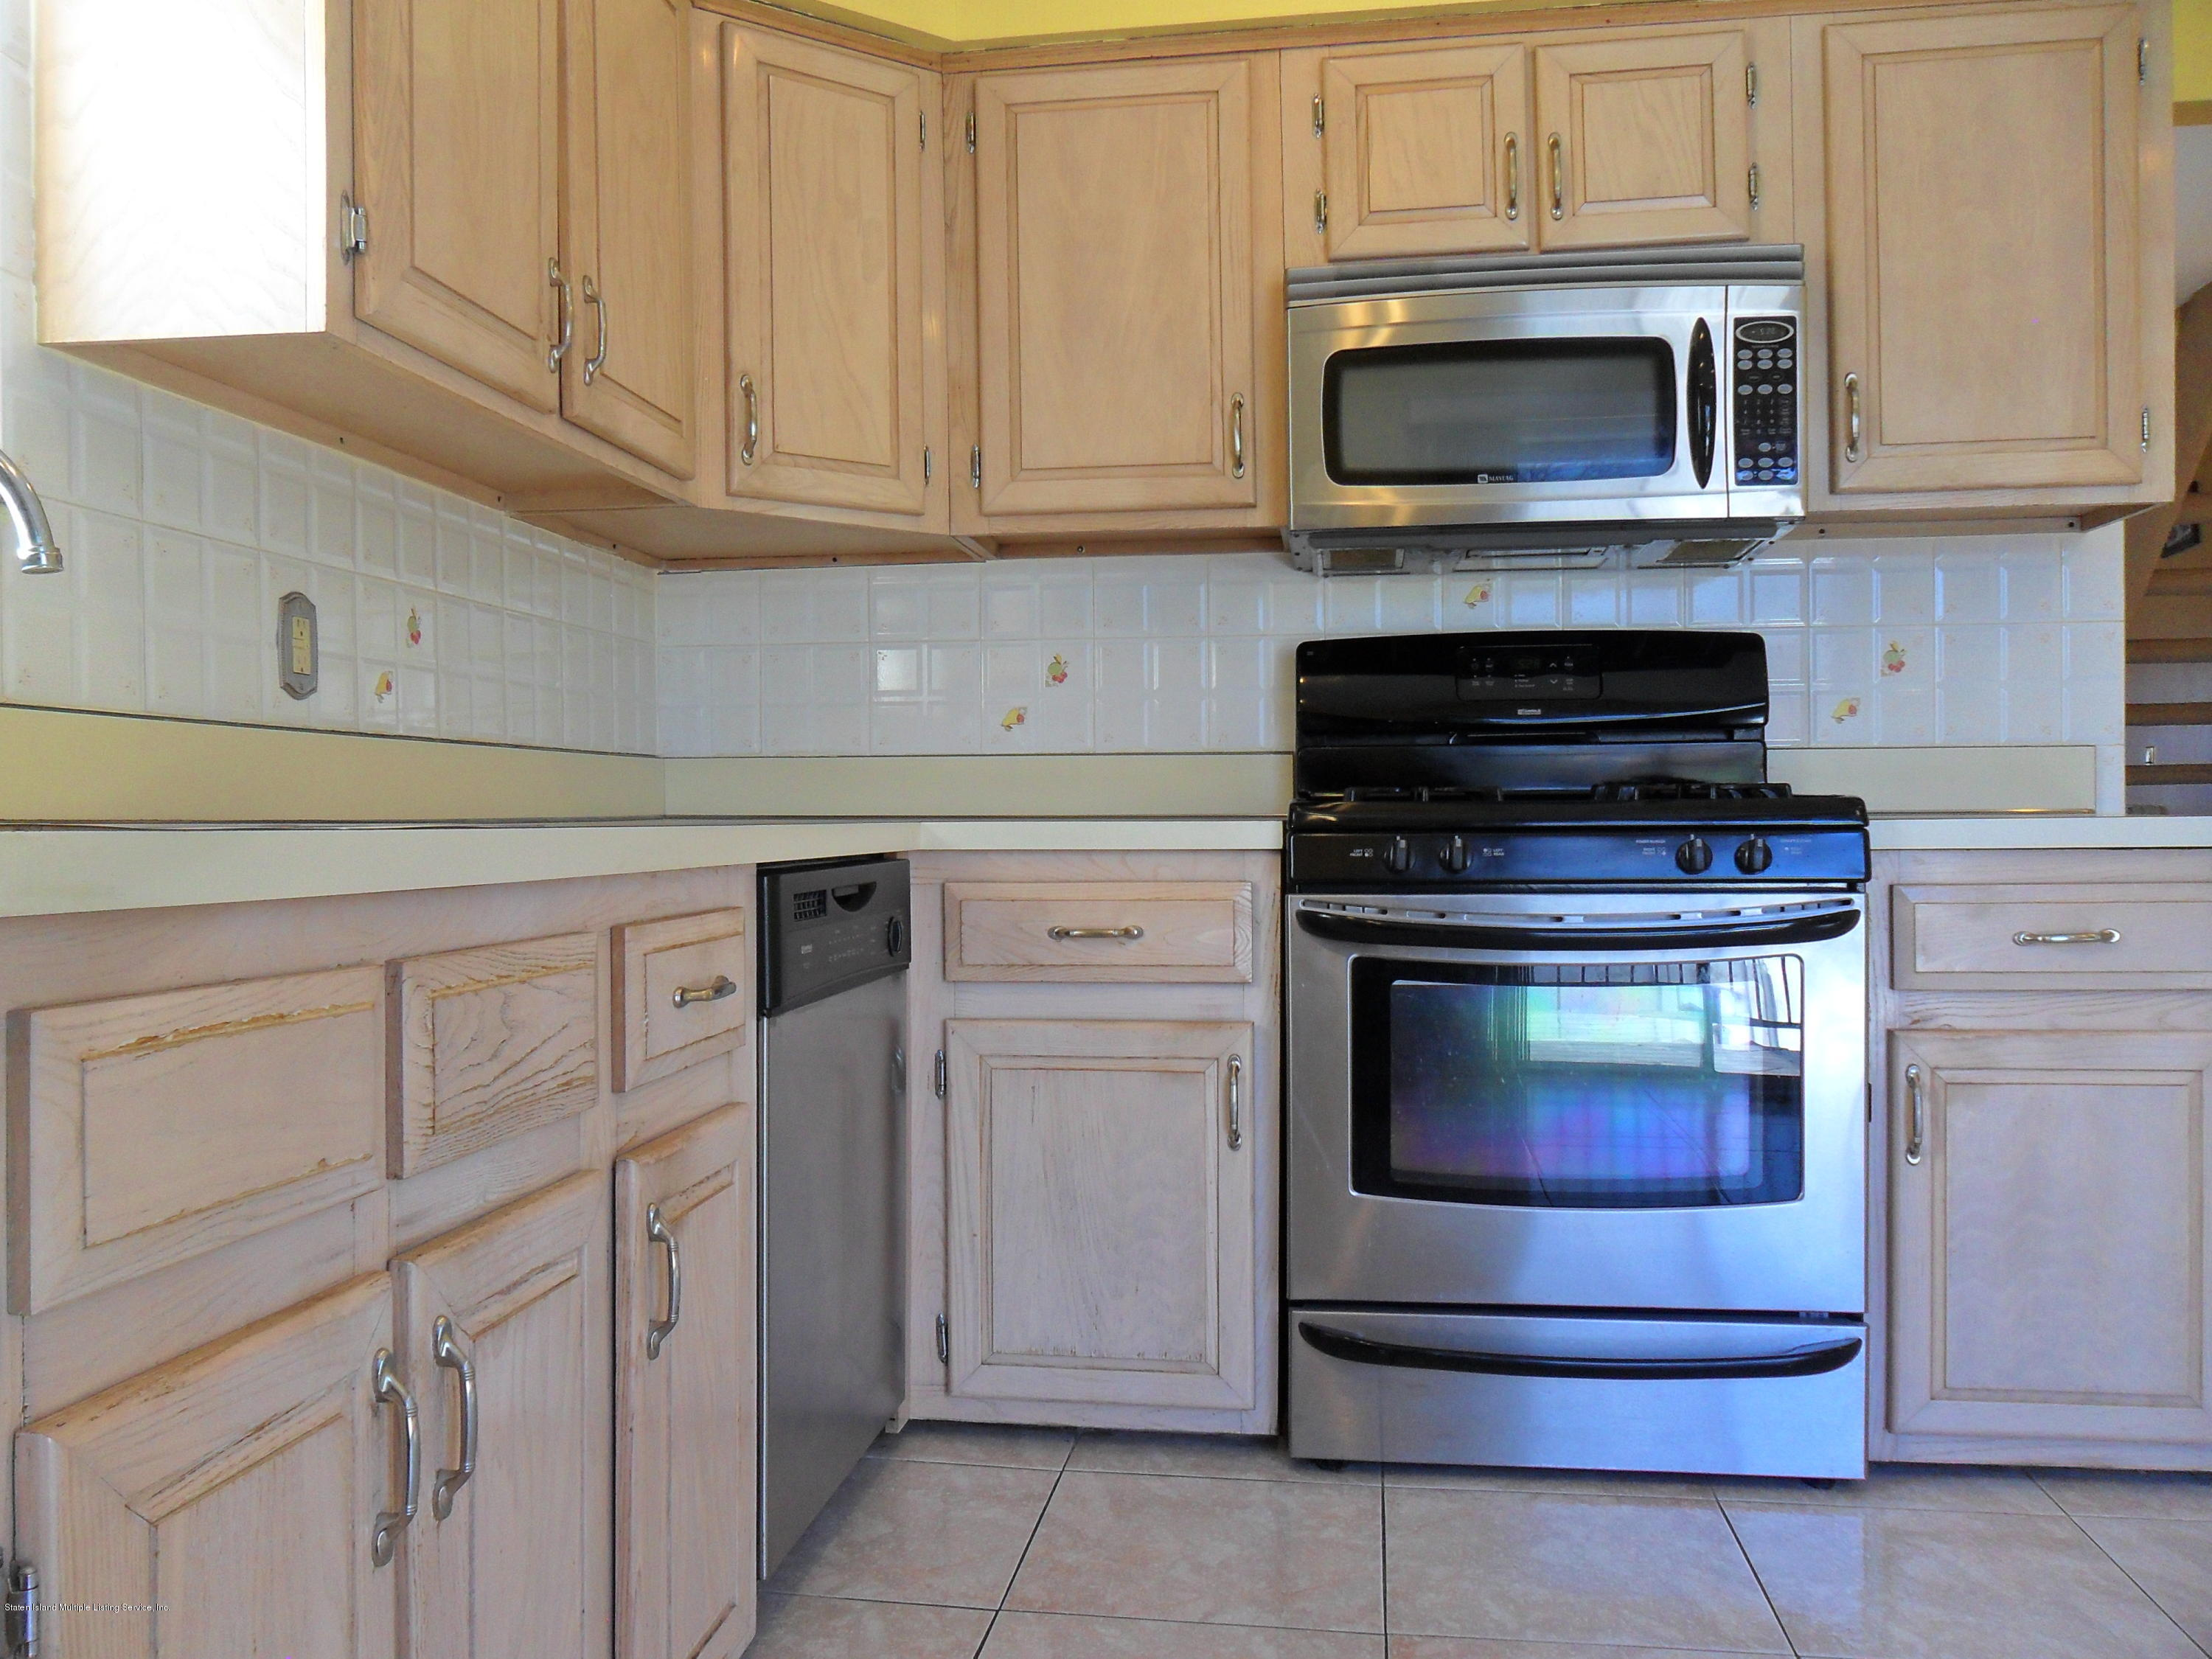 Single Family - Semi-Attached 50 Forest Street  Staten Island, NY 10314, MLS-1127879-19